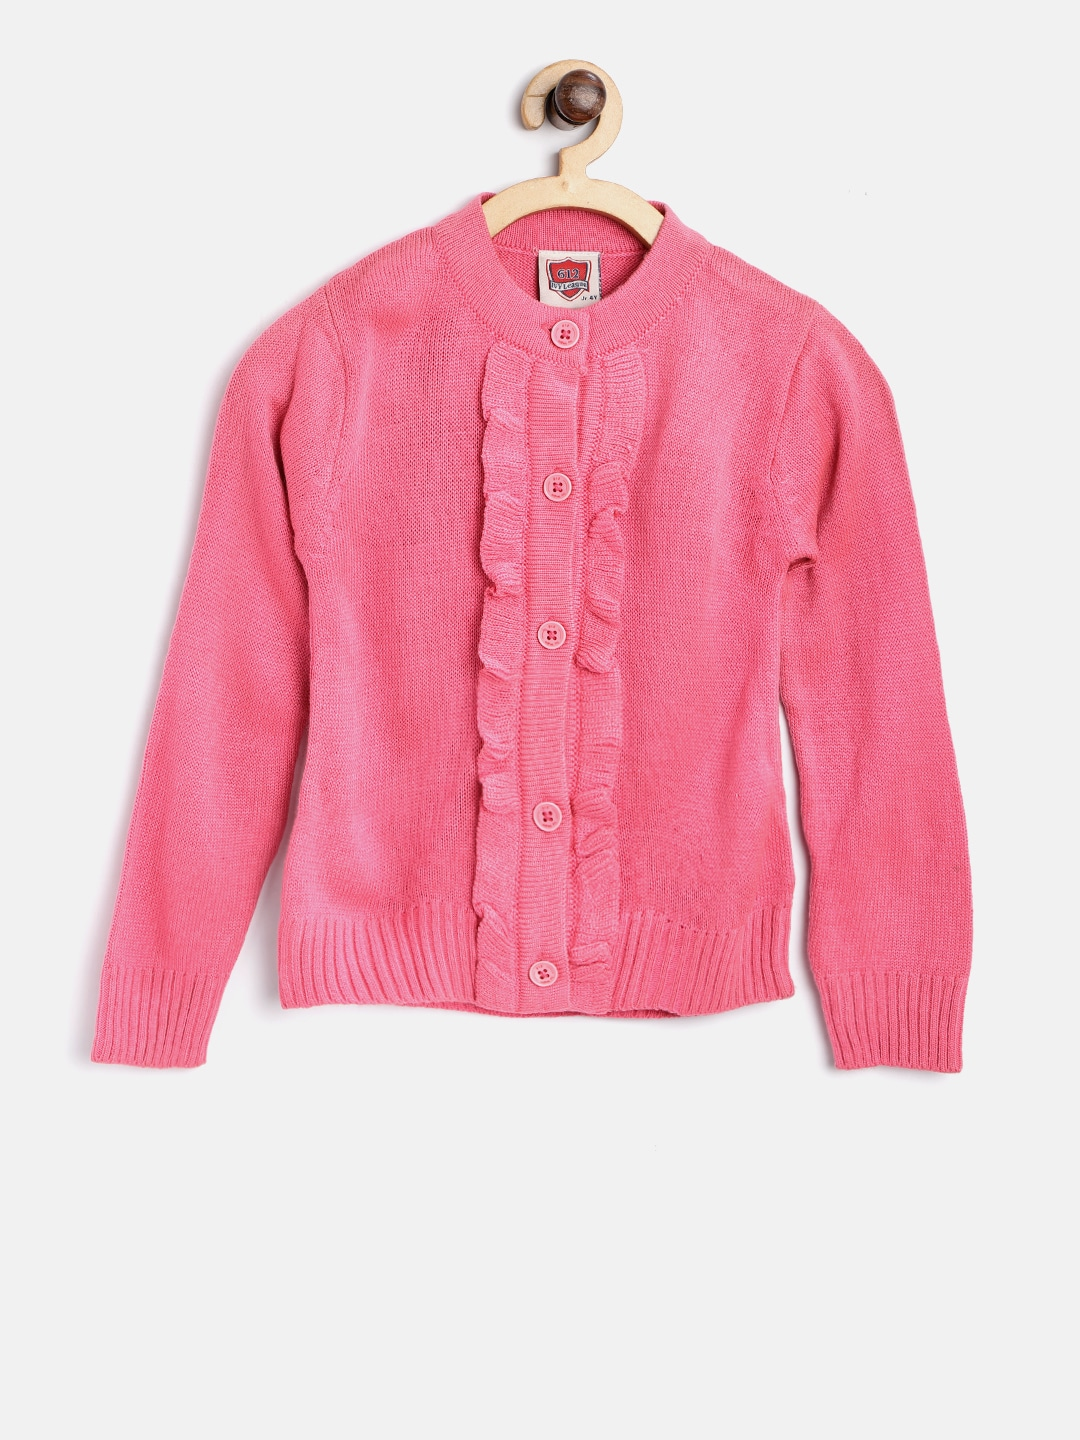 a5c939f174e3 Buy Gini And Jony Girls Off White Cable Knit Pullover - Sweaters for ...